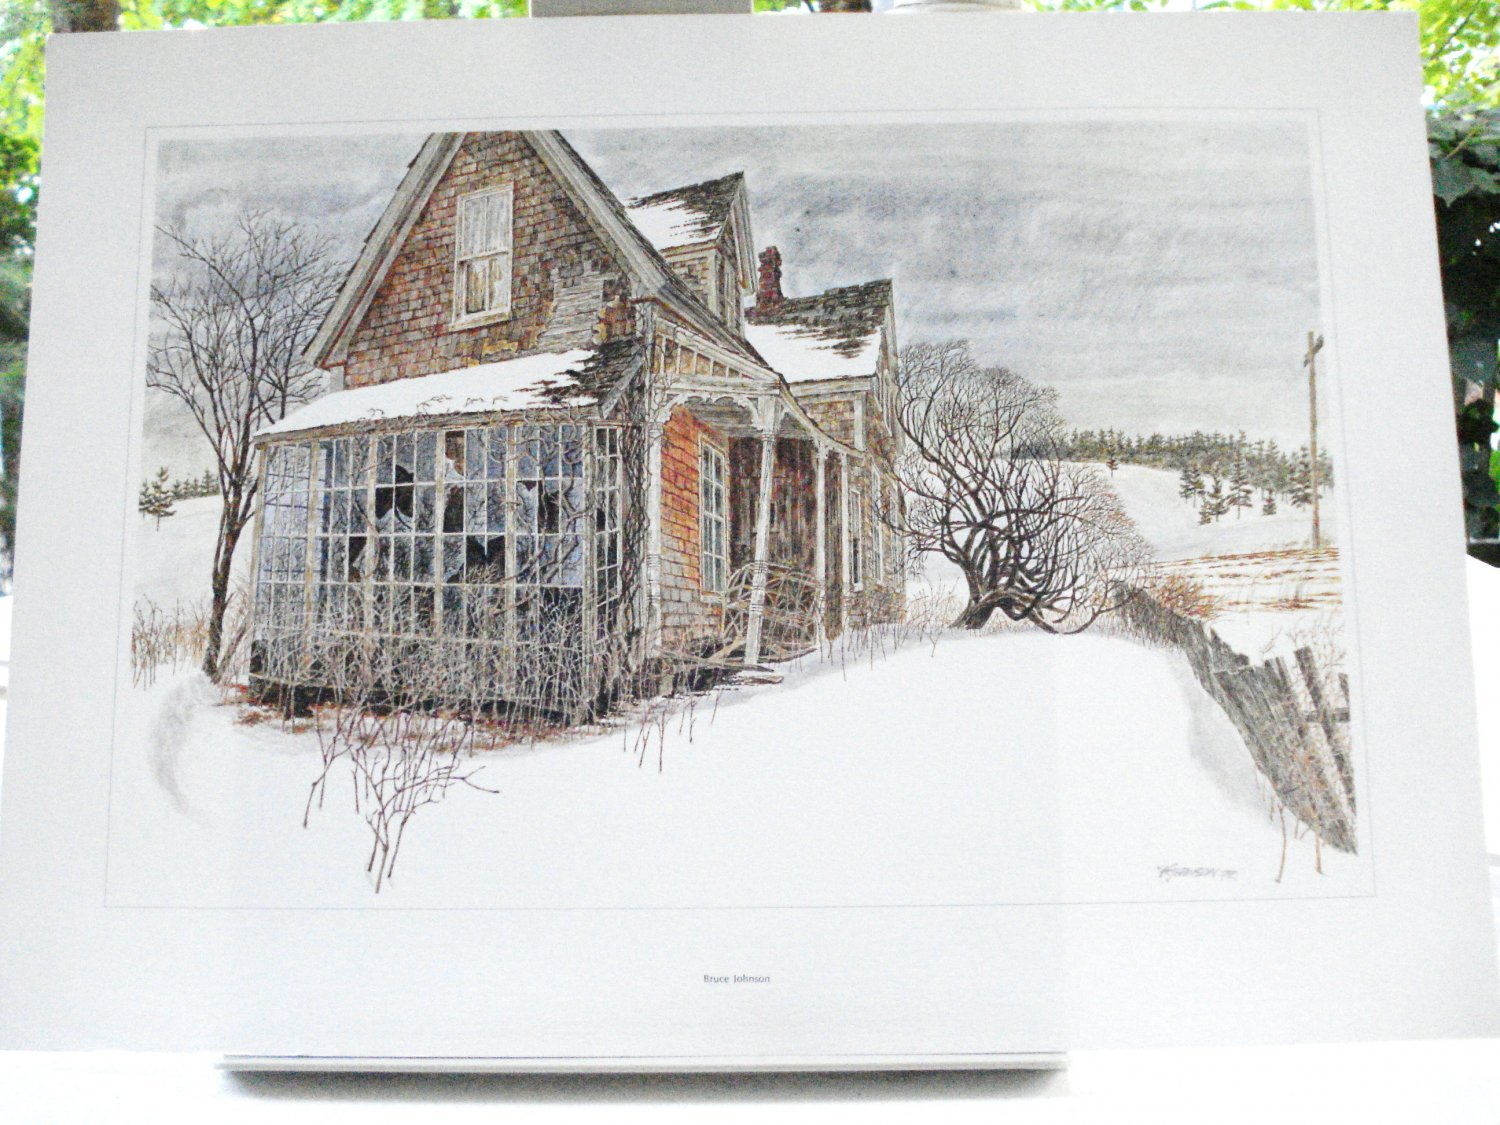 Bruce Johnson lithograph abandoned house derelict building AL1486